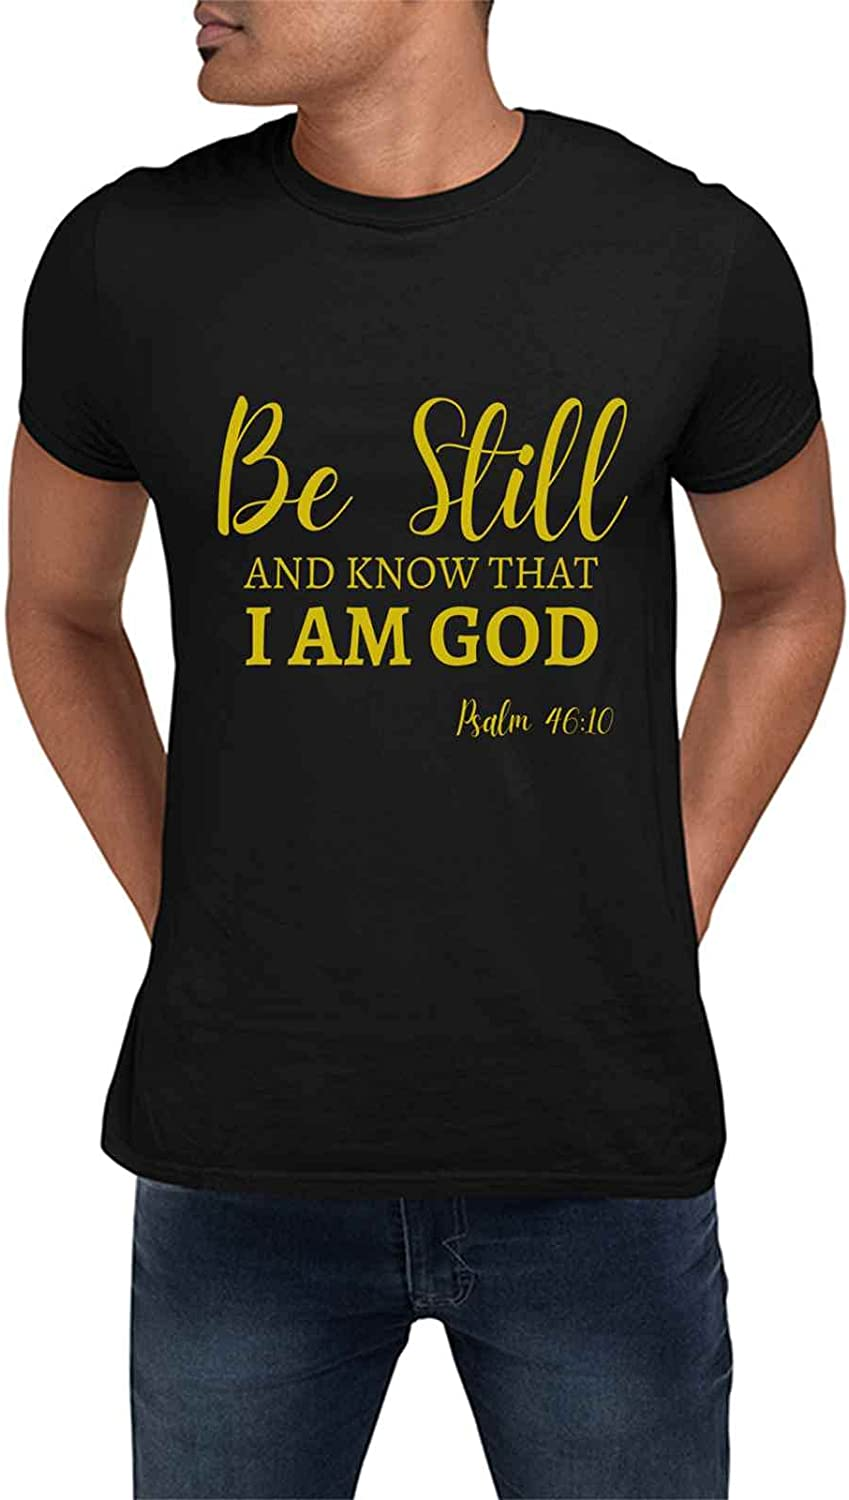 Special Magic For Christmas New Year Birthday Morphing Christian Bible Simple Be Still AND KNOW I AM GOD PSALM 4010 Heat Sensitive Present For Birthday, Anniversary, National Nurses Day S Black T-Shir